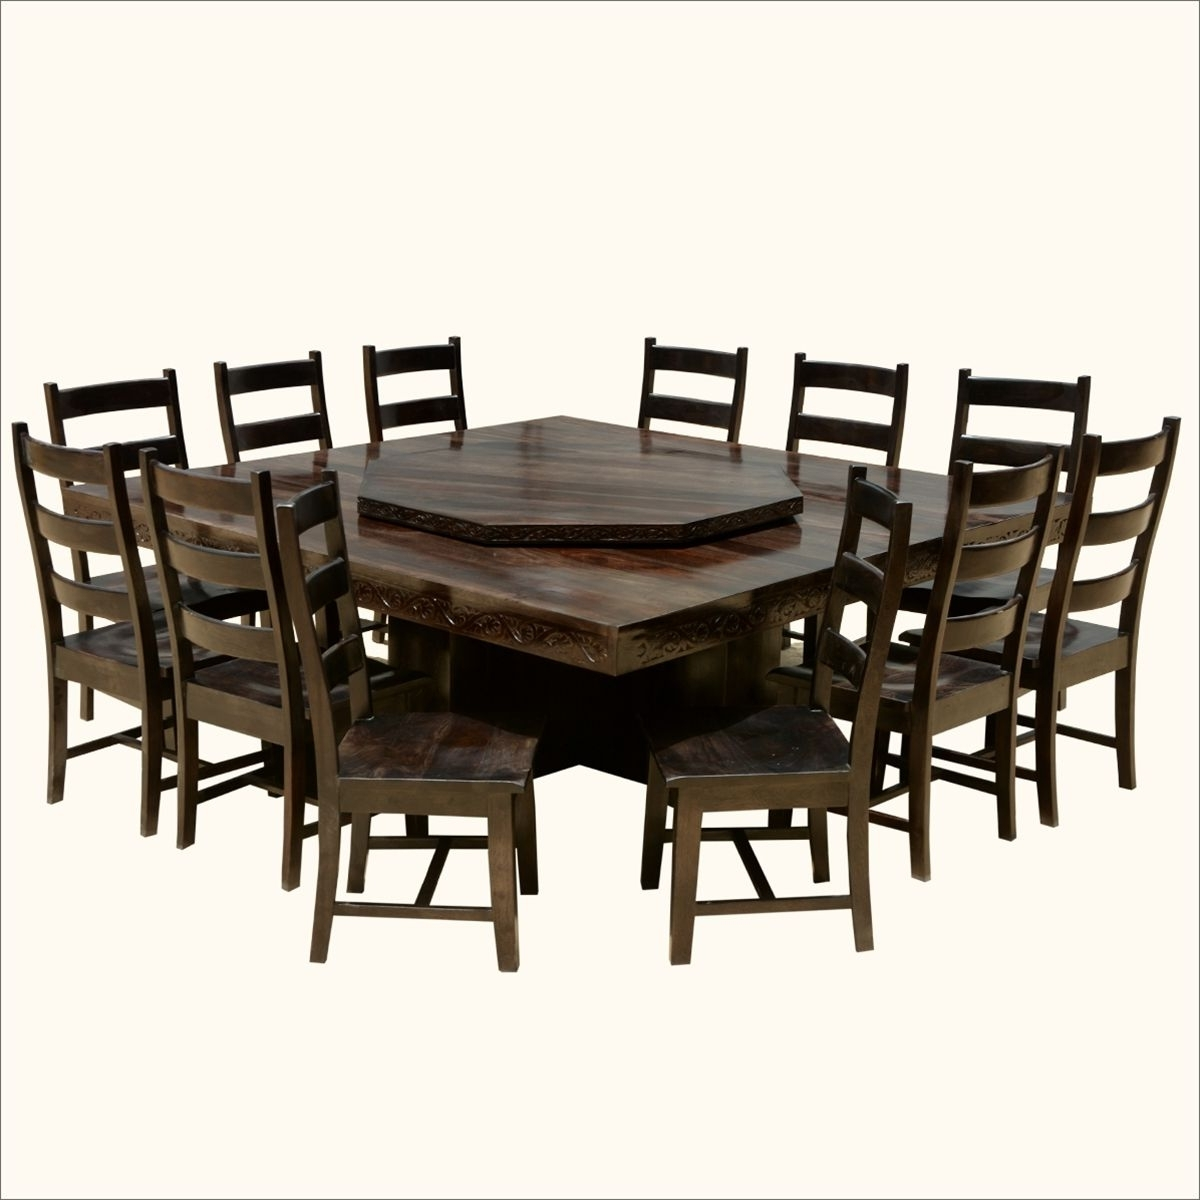 Famous Modern Pioneer Solid Wood Lazy Susan Pedestal Dining Table & Chair In Laurent 7 Piece Rectangle Dining Sets With Wood And Host Chairs (View 11 of 25)